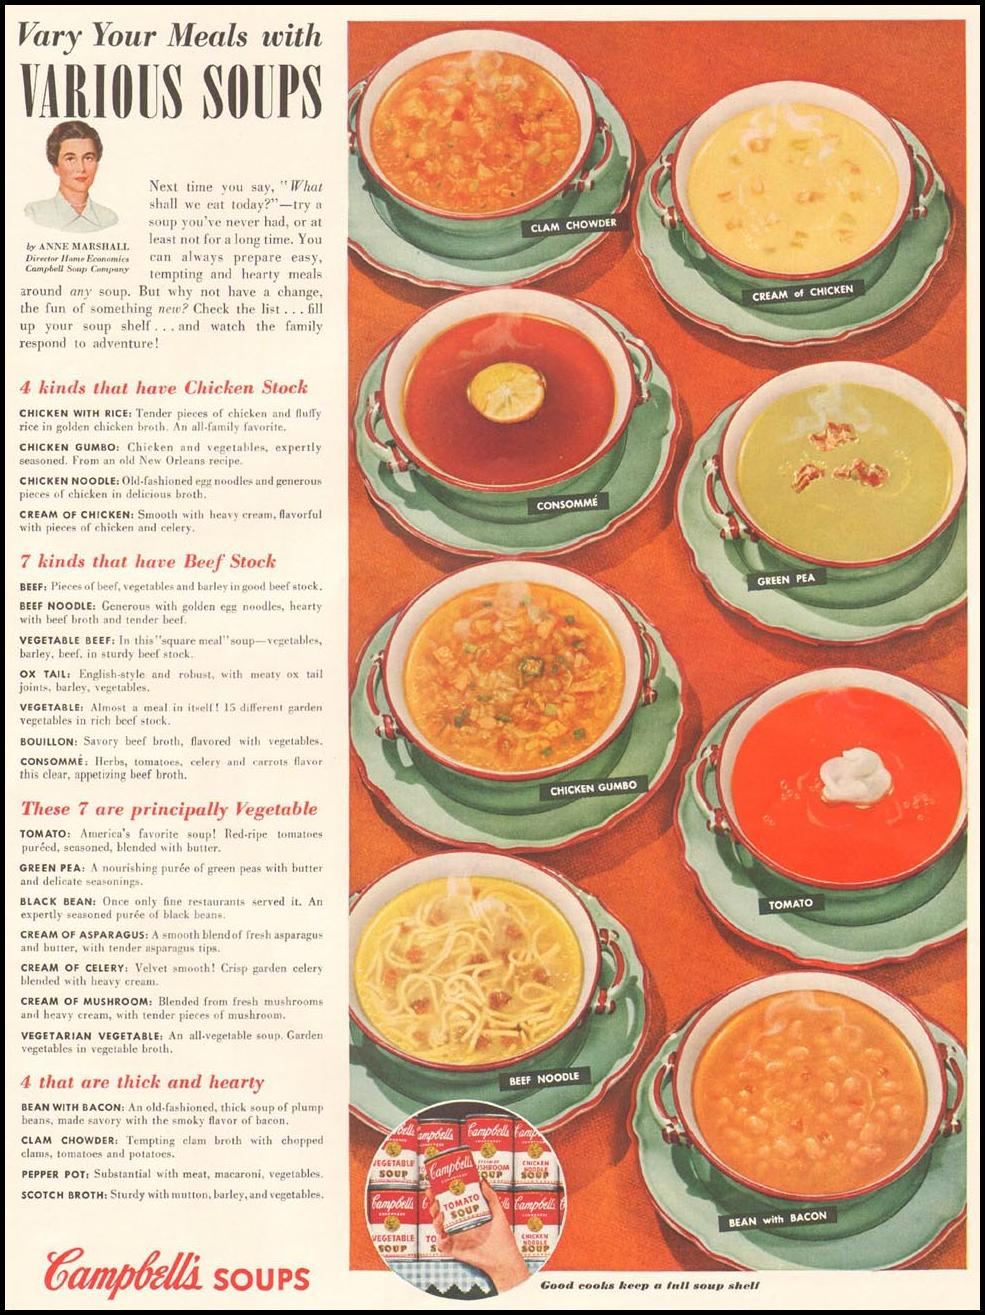 CAMPBELL'S SOUPS LADIES' HOME JOURNAL 03/01/1954 p. 75